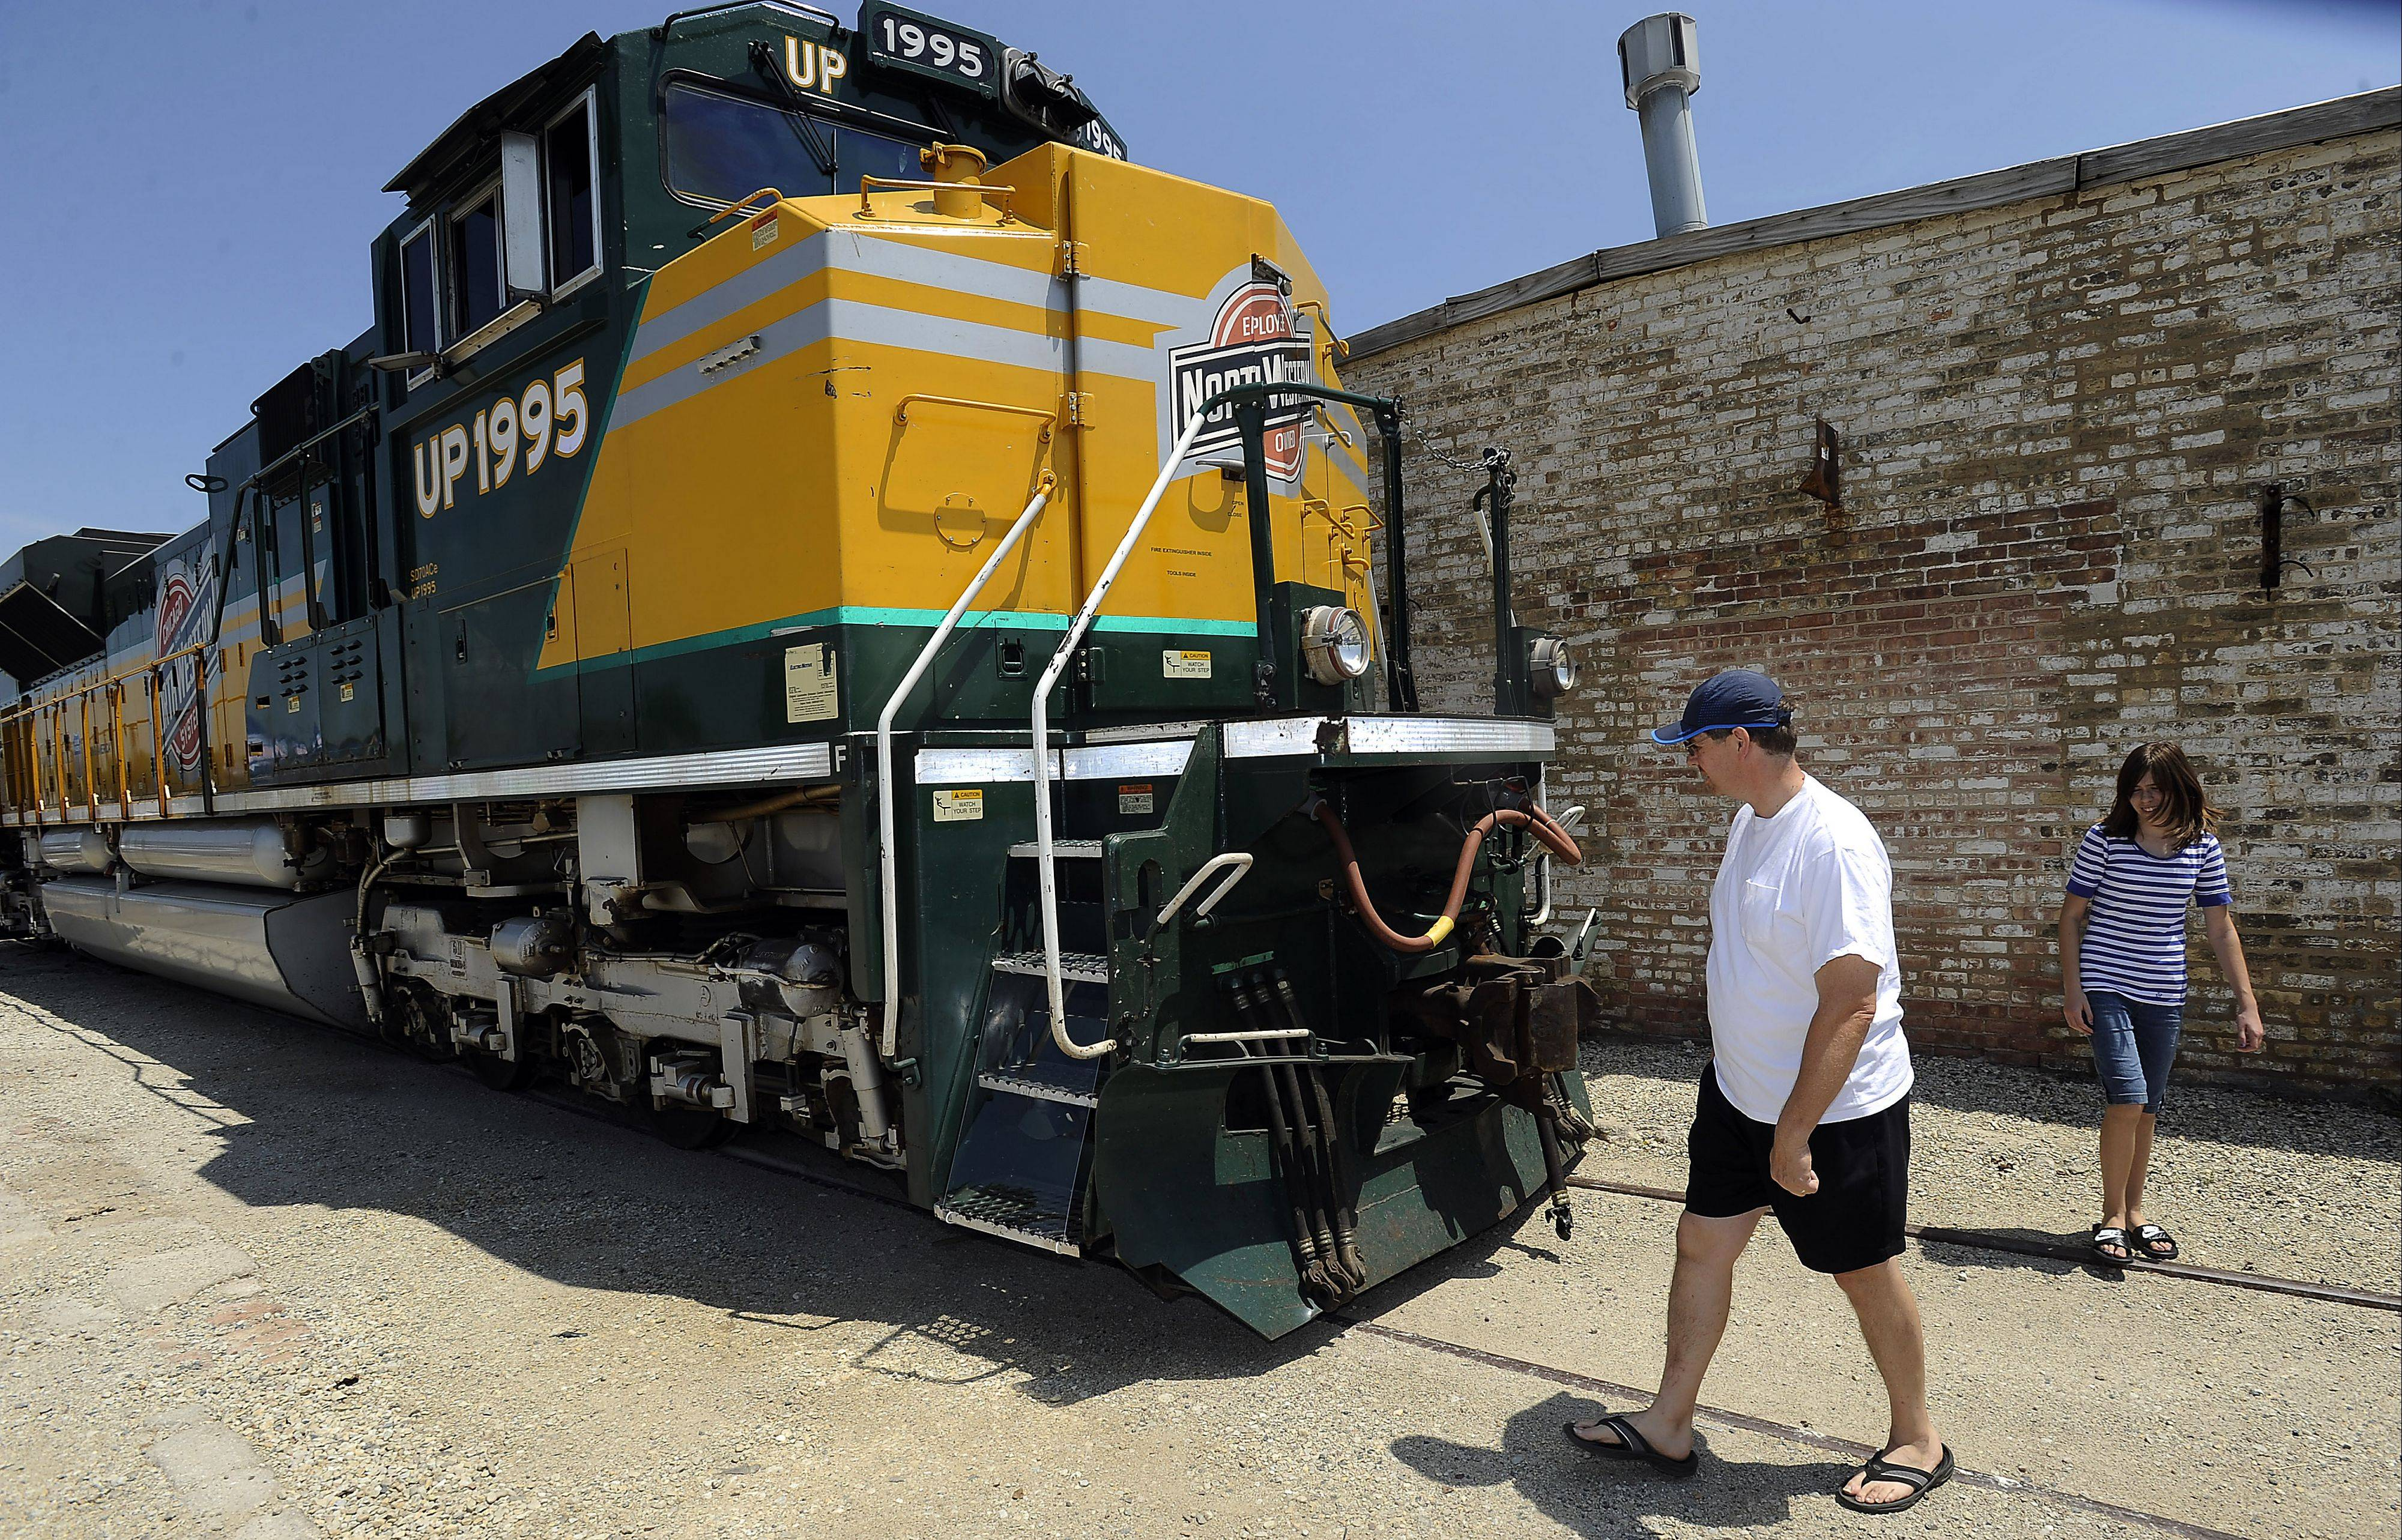 Train fanatic Jim Fitzgerald and his daughter Katie,12, check out Union Pacfic engine 1995 at the Arlington Heights Fontier Days on Saturday. The chance for people to get up close and personal with a locomotive fit with the train theme of the village's 125th anniversary. The engine carries the insignia of the Chicago & North Western Railway, which merged with Union Pacific in 1995. The C&NW Heritage locomotive is a working unit, and was painted in C&NW colors in 2006.